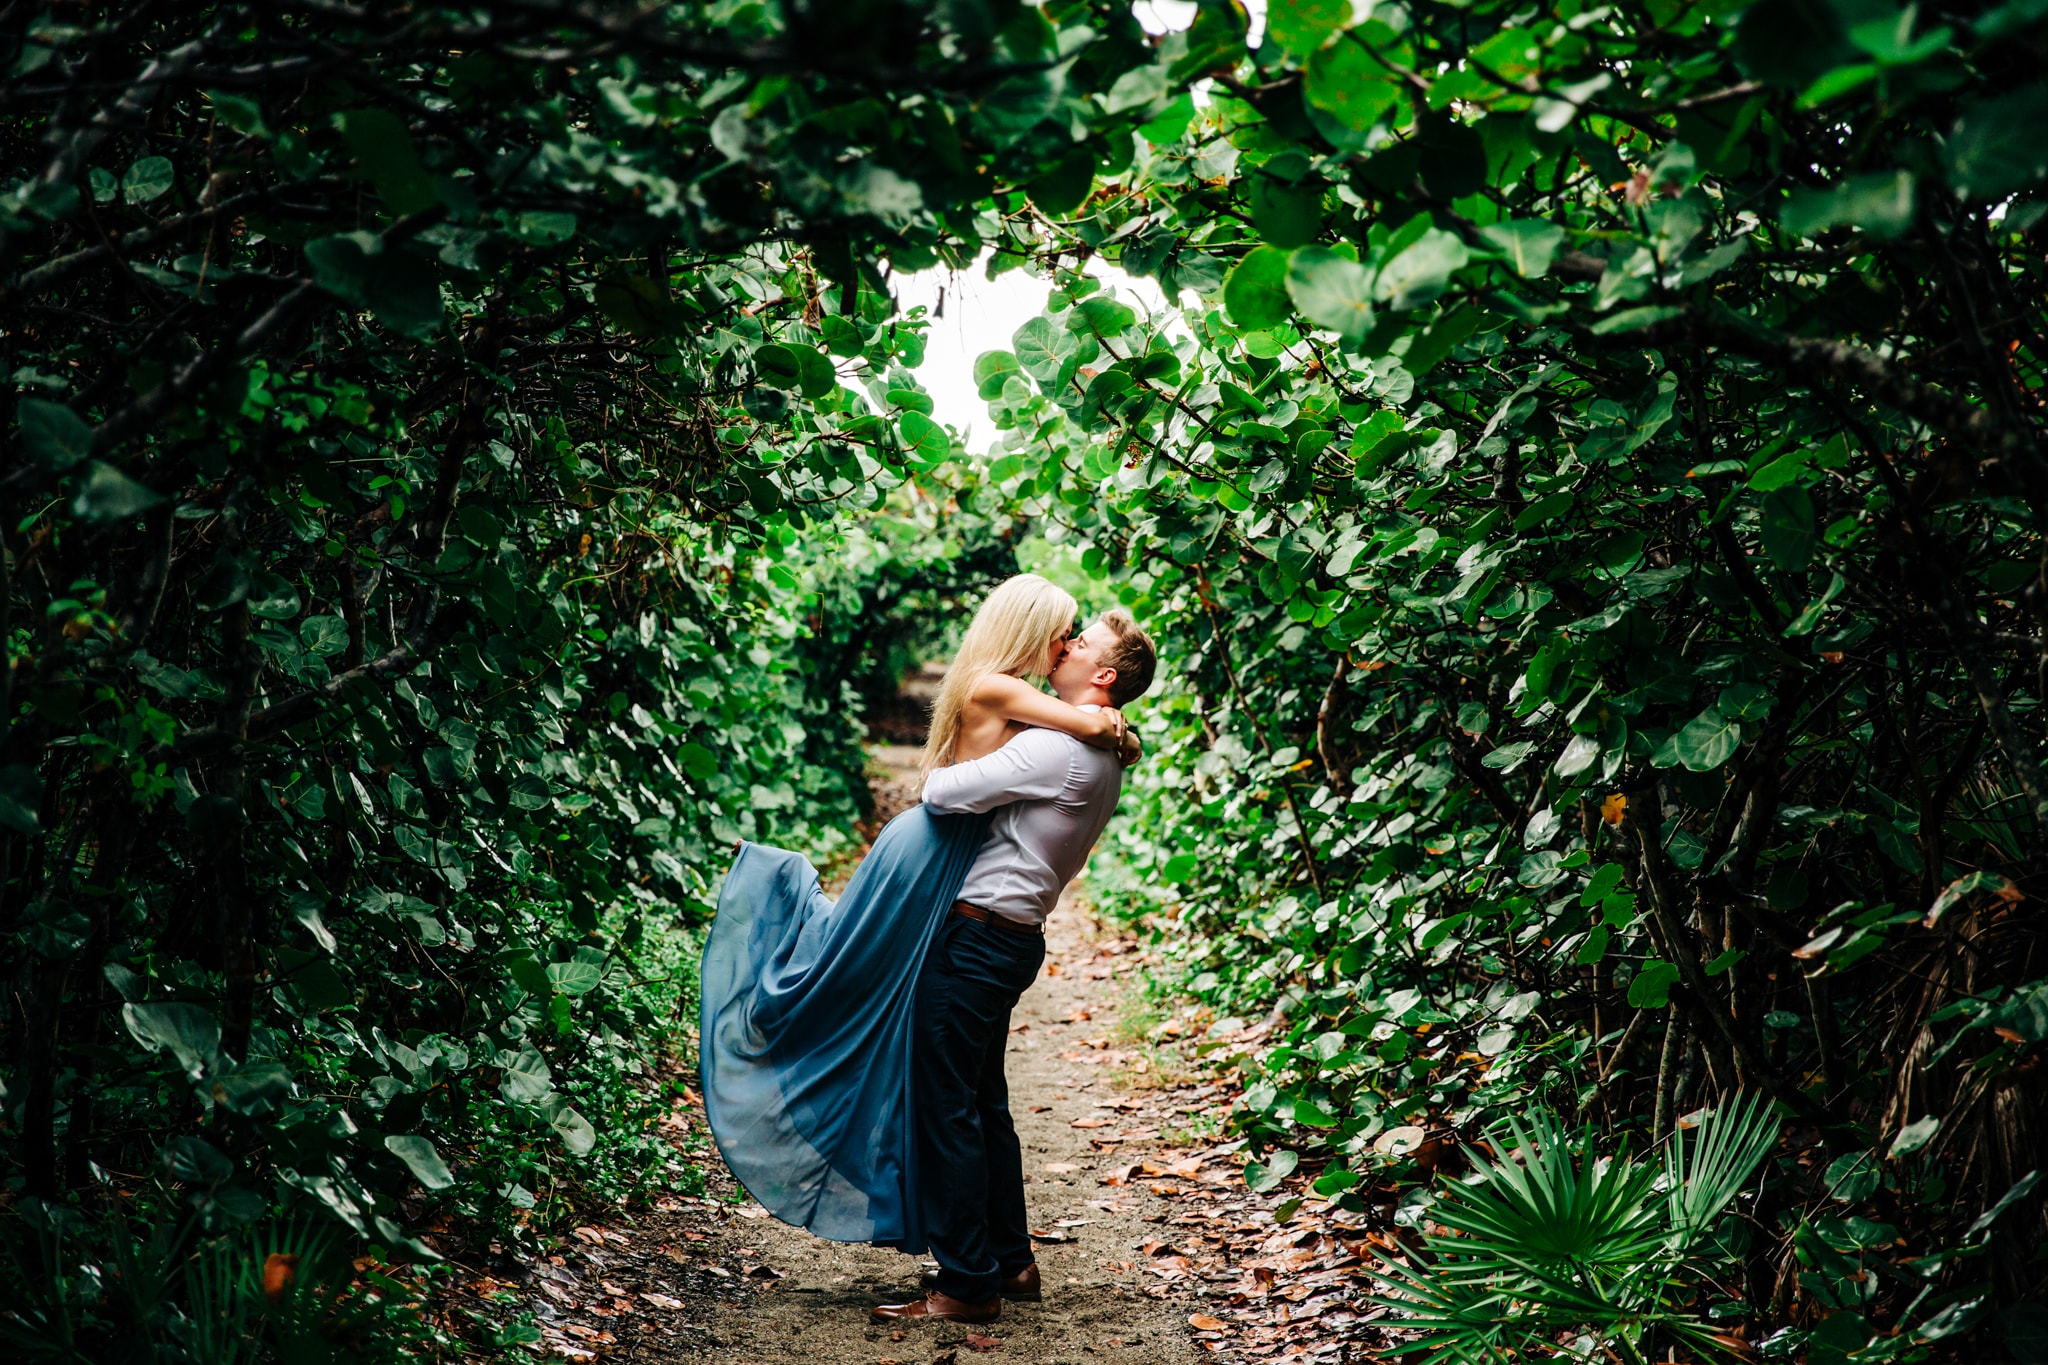 lord of the rings green tunnel with couple kissing and light streaking through